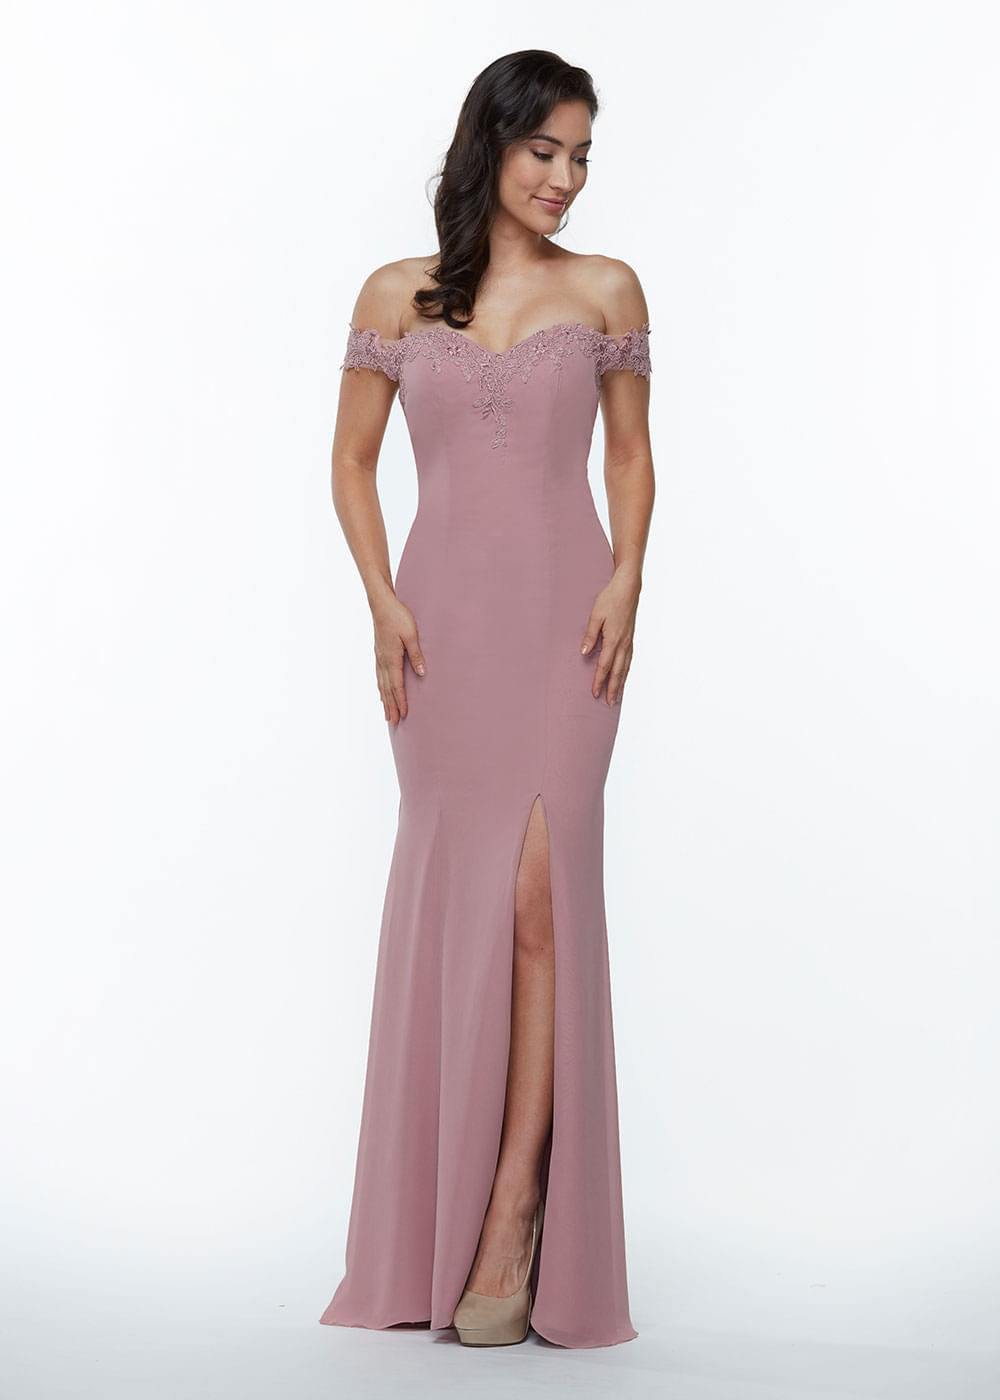 TH-80121 TH Bridesmaid Dresses By Ashdon